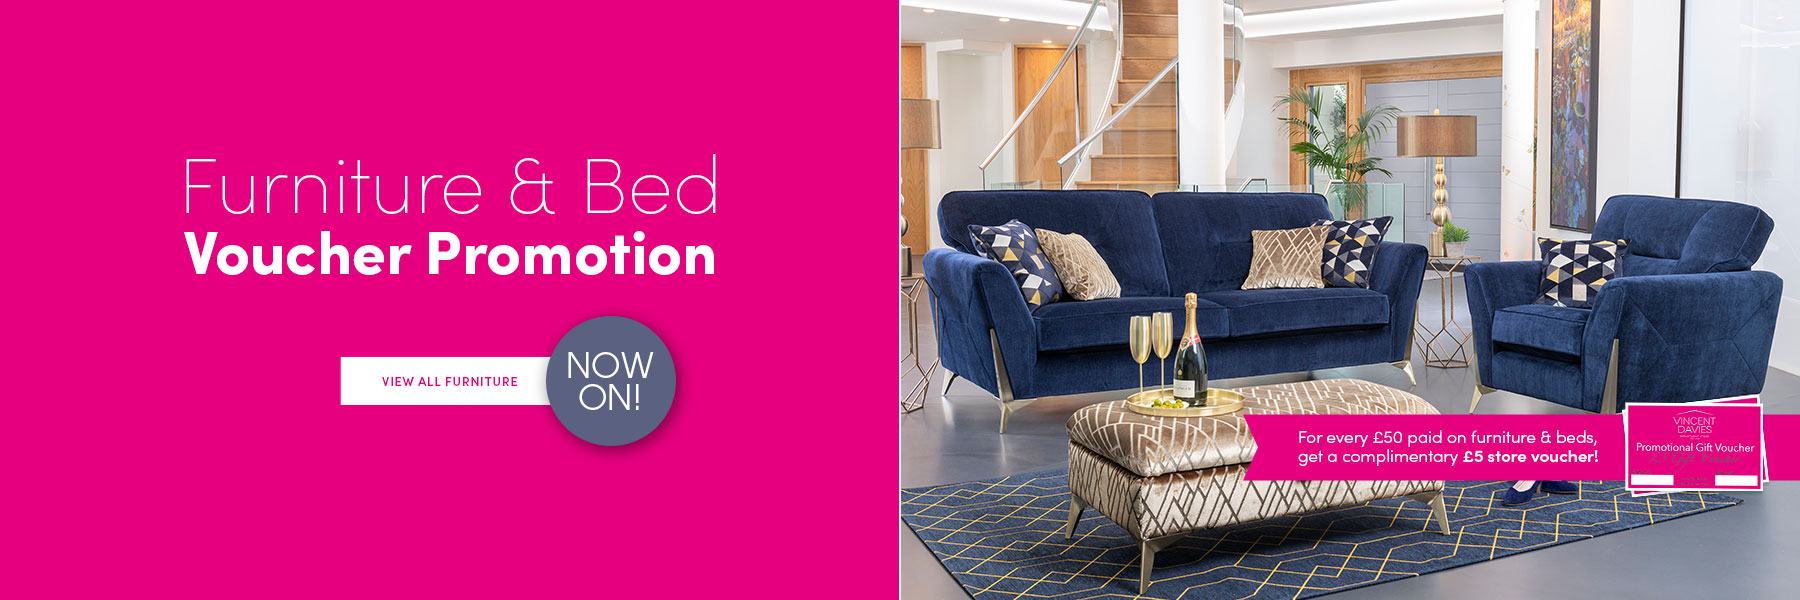 Furniture & Bed Voucher Promotion Now On